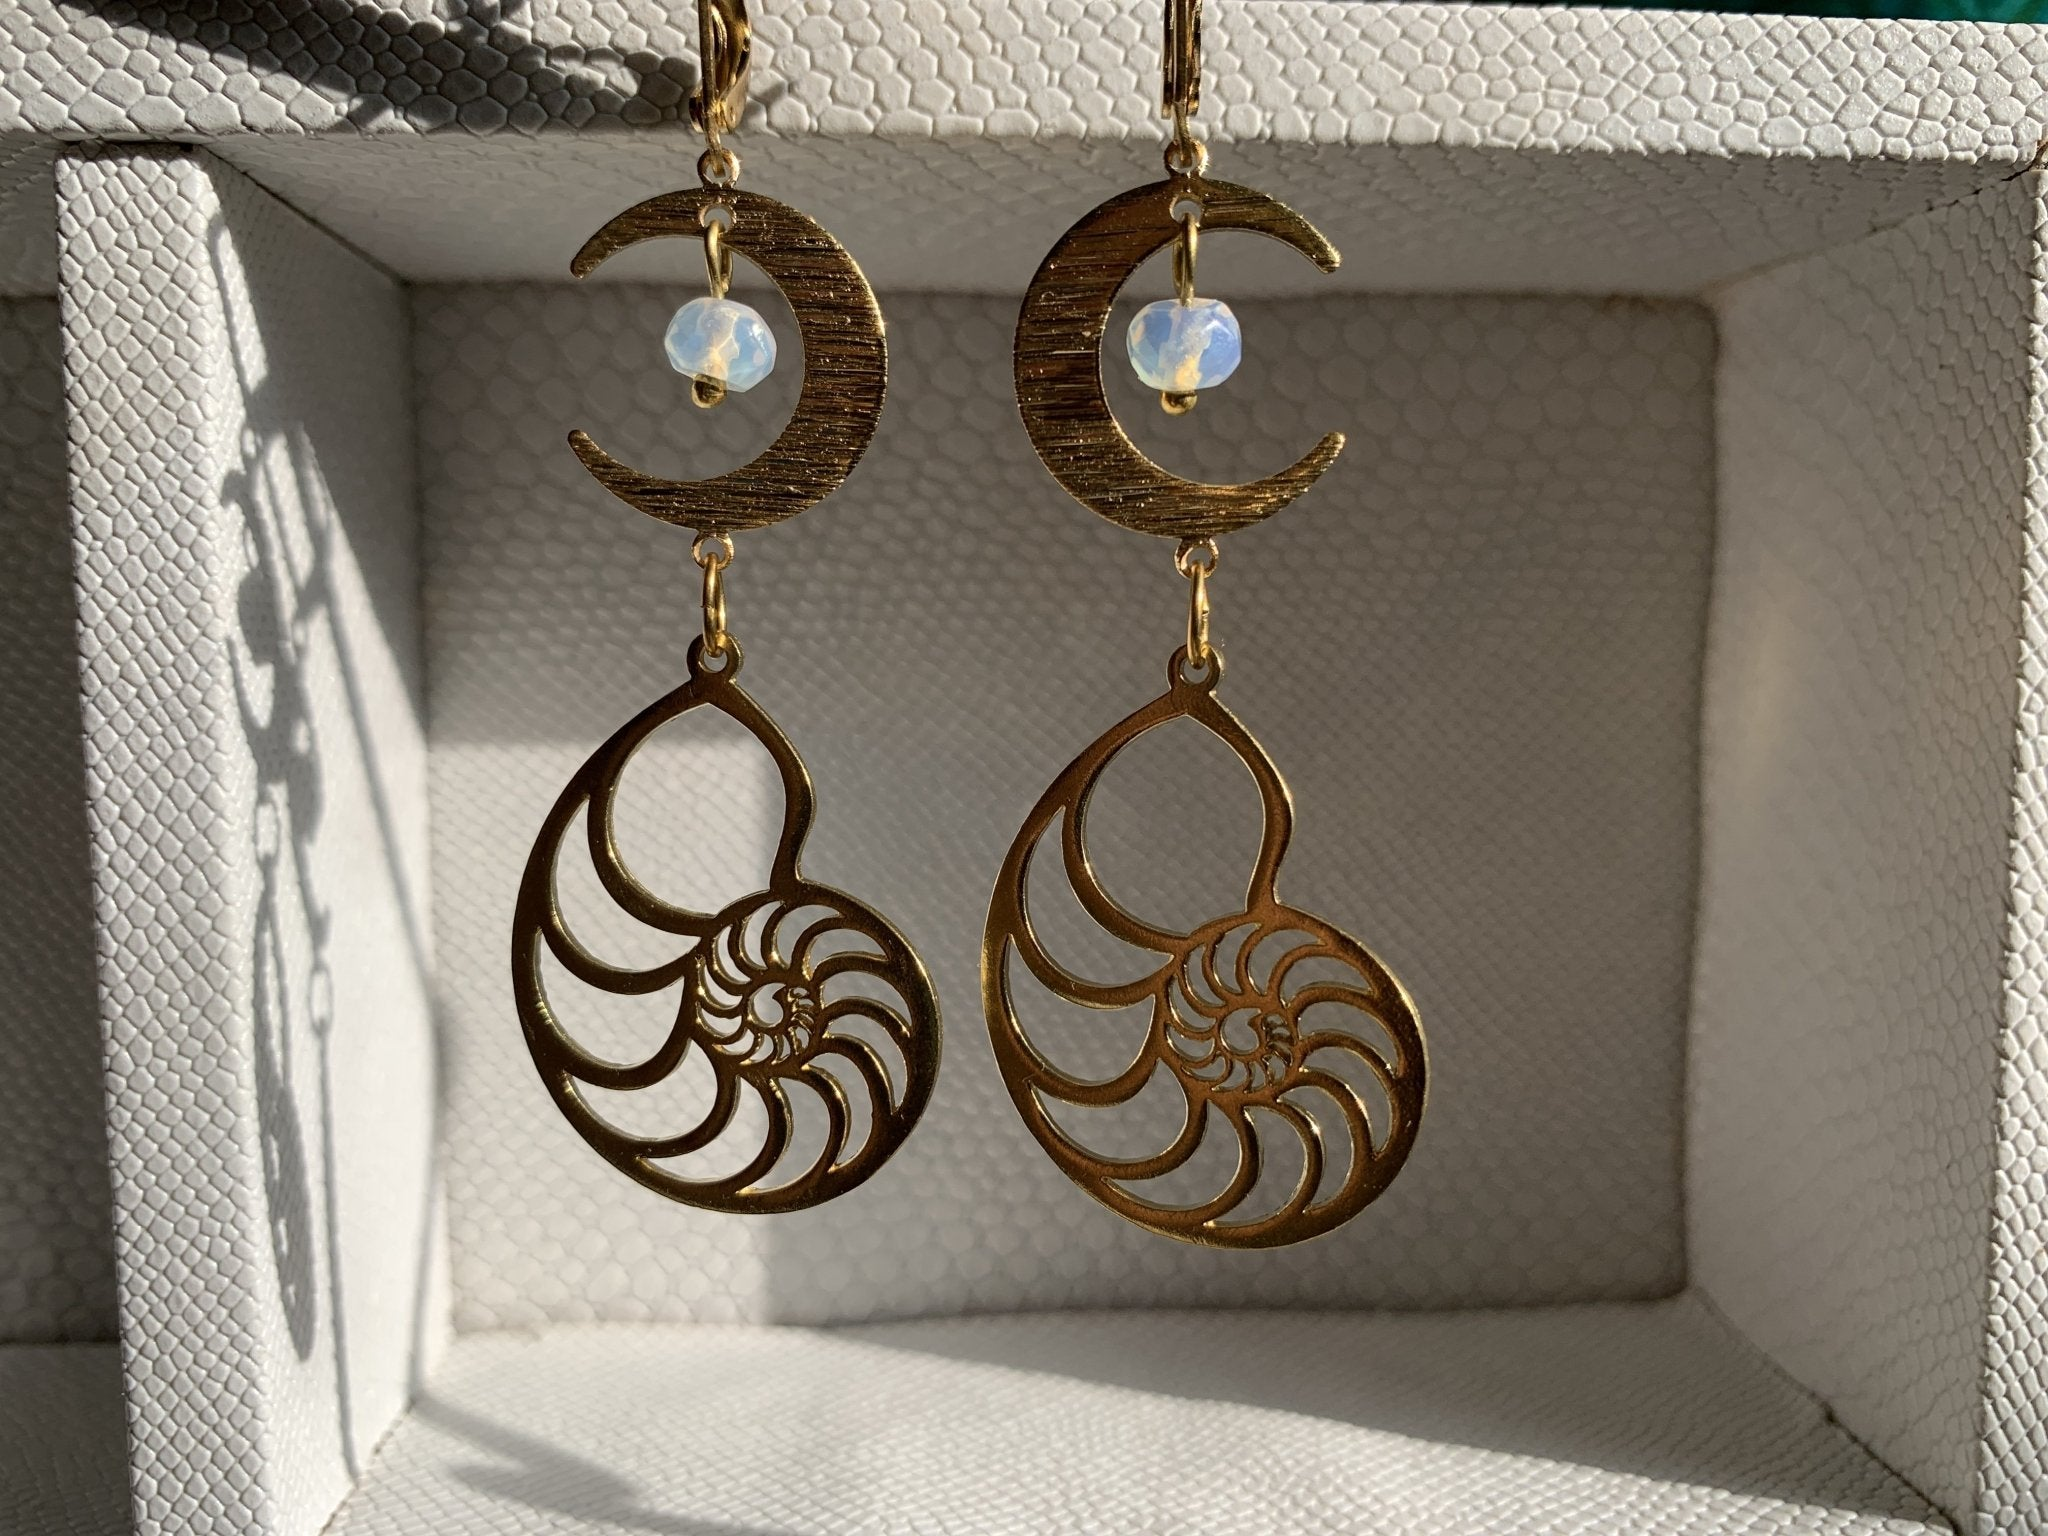 Maya Moon Opalite and Brass Earrings - We Love Brass